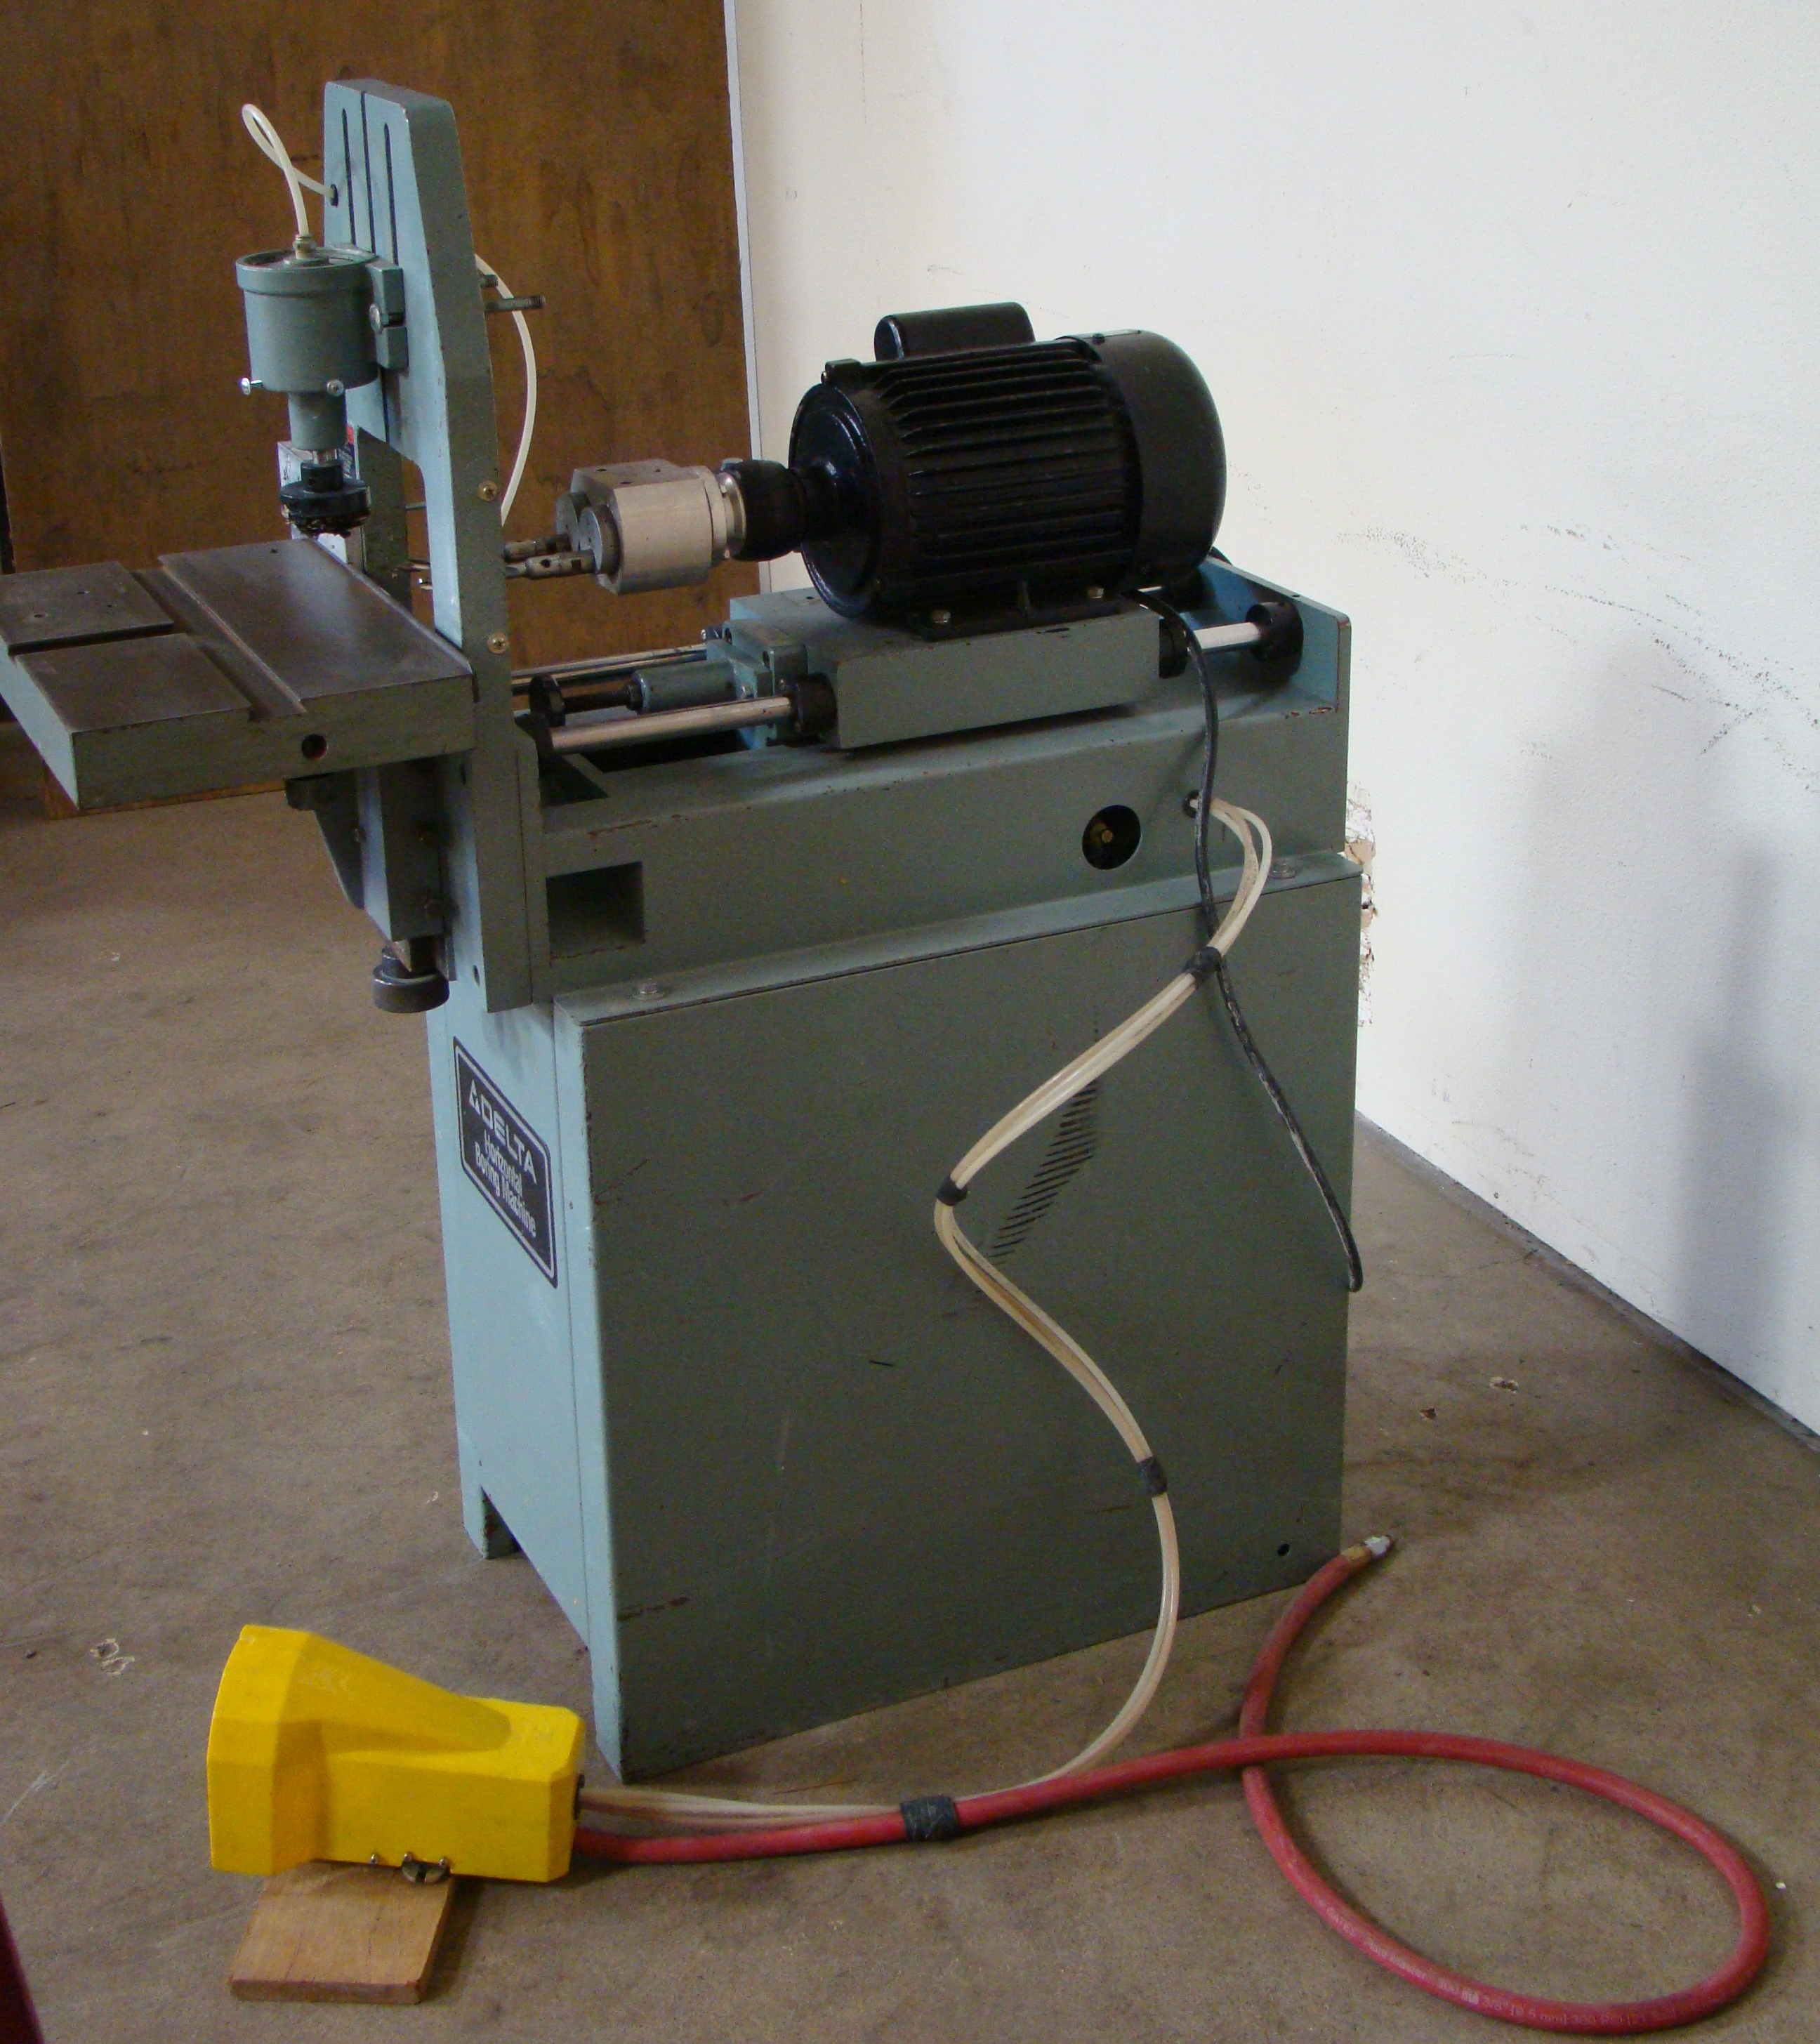 Delta Horizontal 2 Spindle Boring Machine Model #32-350, 1 HP 115/230 Volt - Image 3 of 6